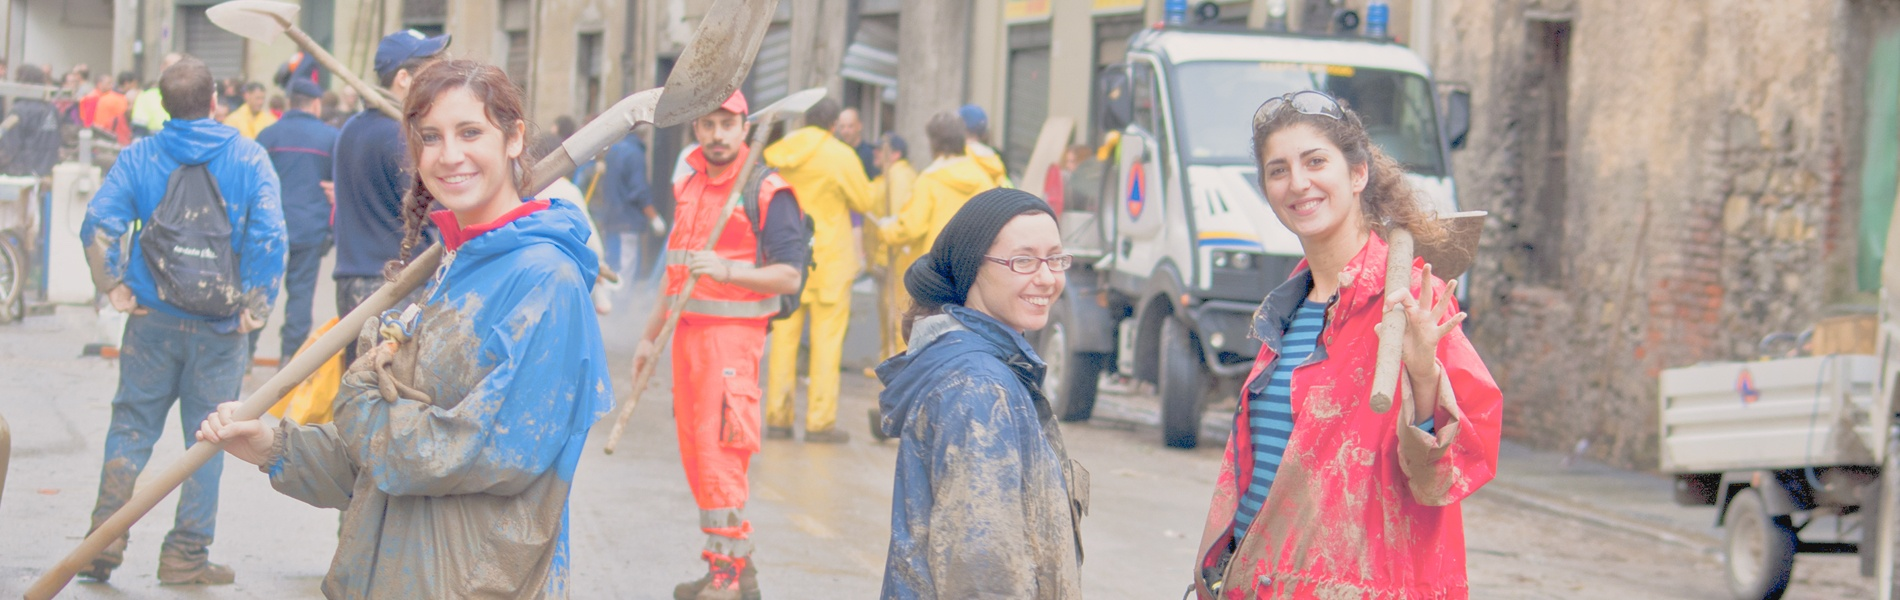 Helping-Your-Community-During-Disasters_1900x600.jpg